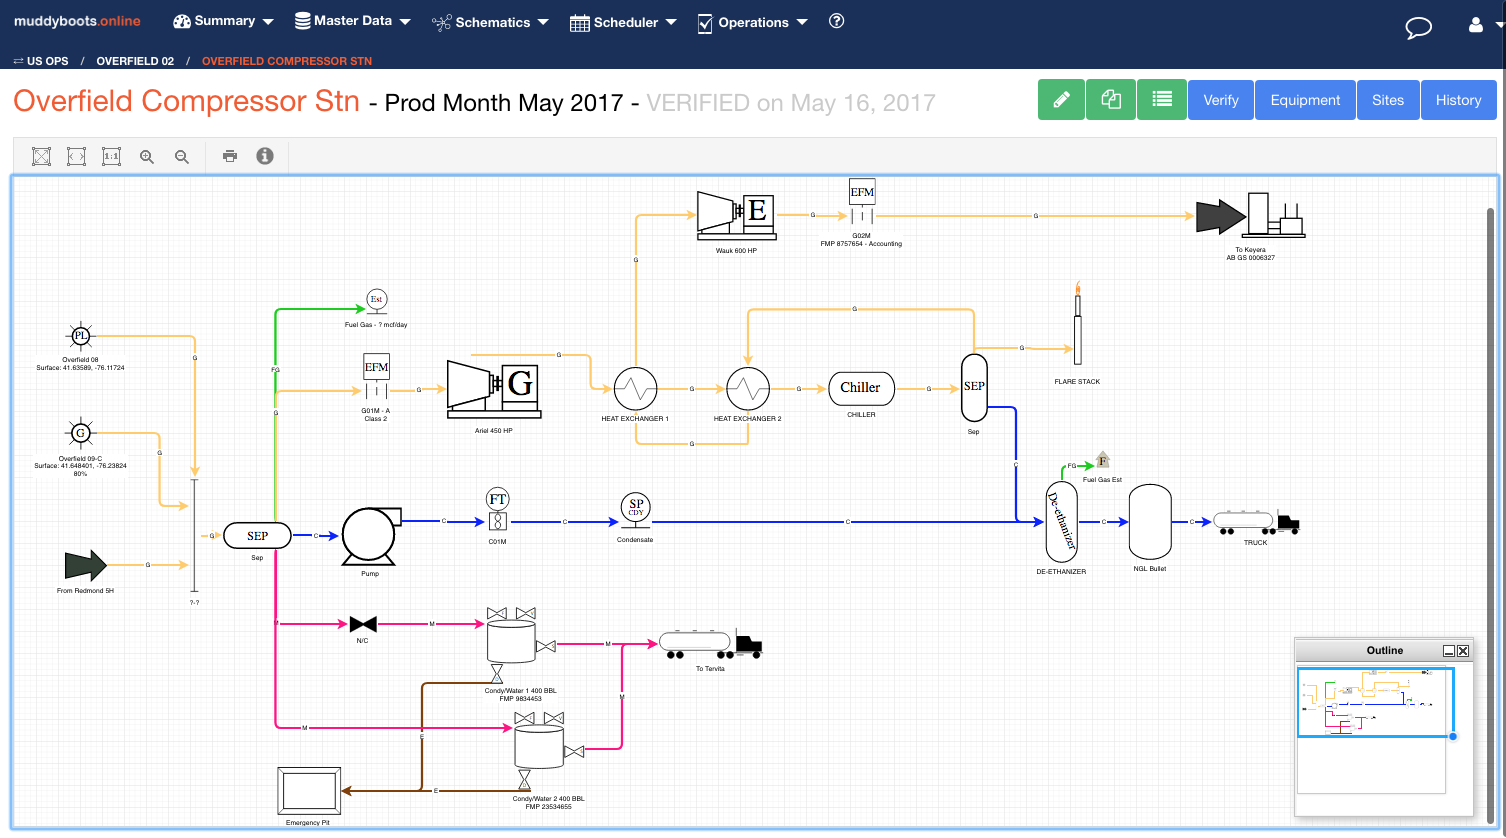 Sample Site Facility Diagram in muddyboots.online